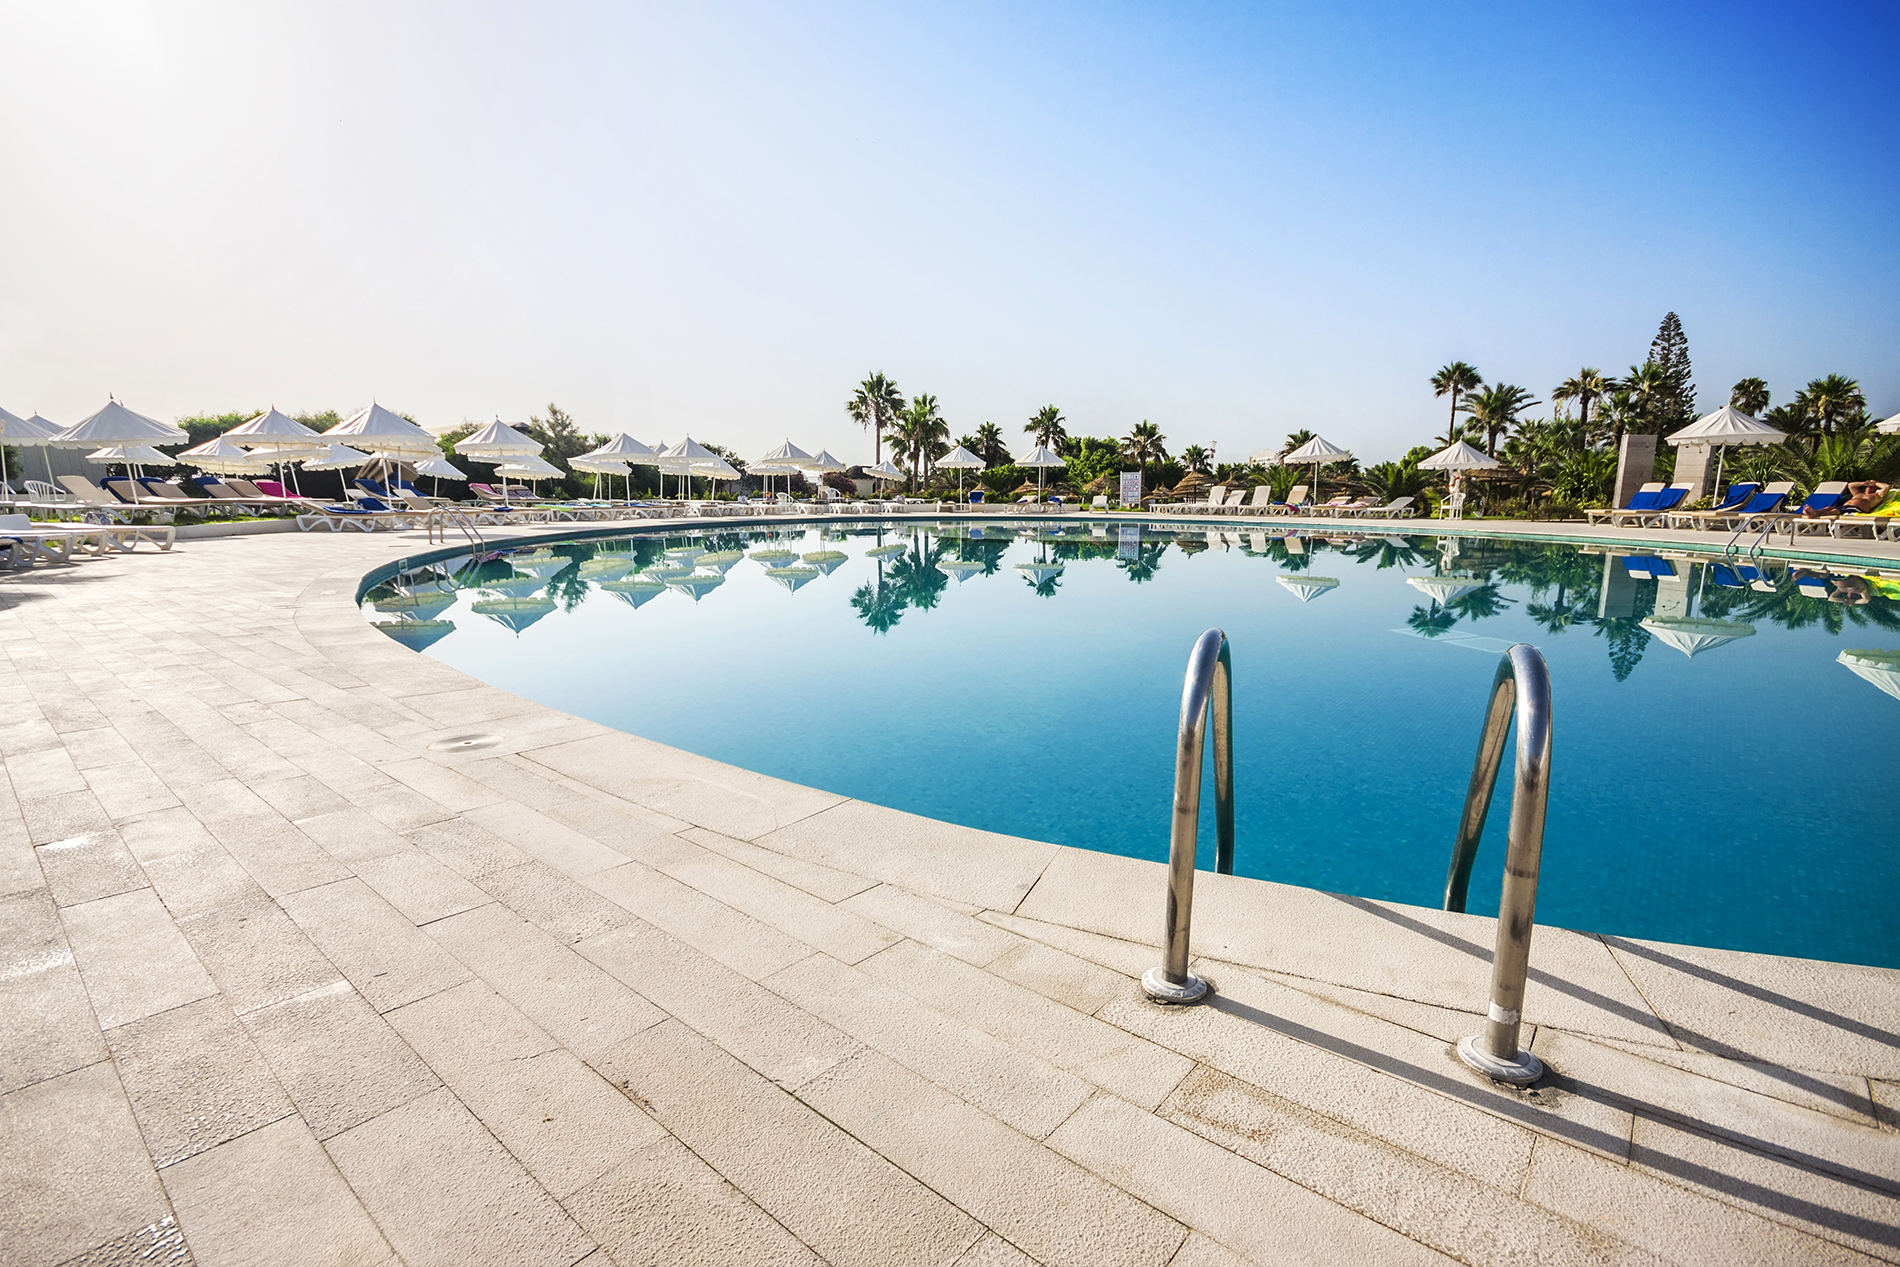 Outdoor swimming pool and facilities 53799